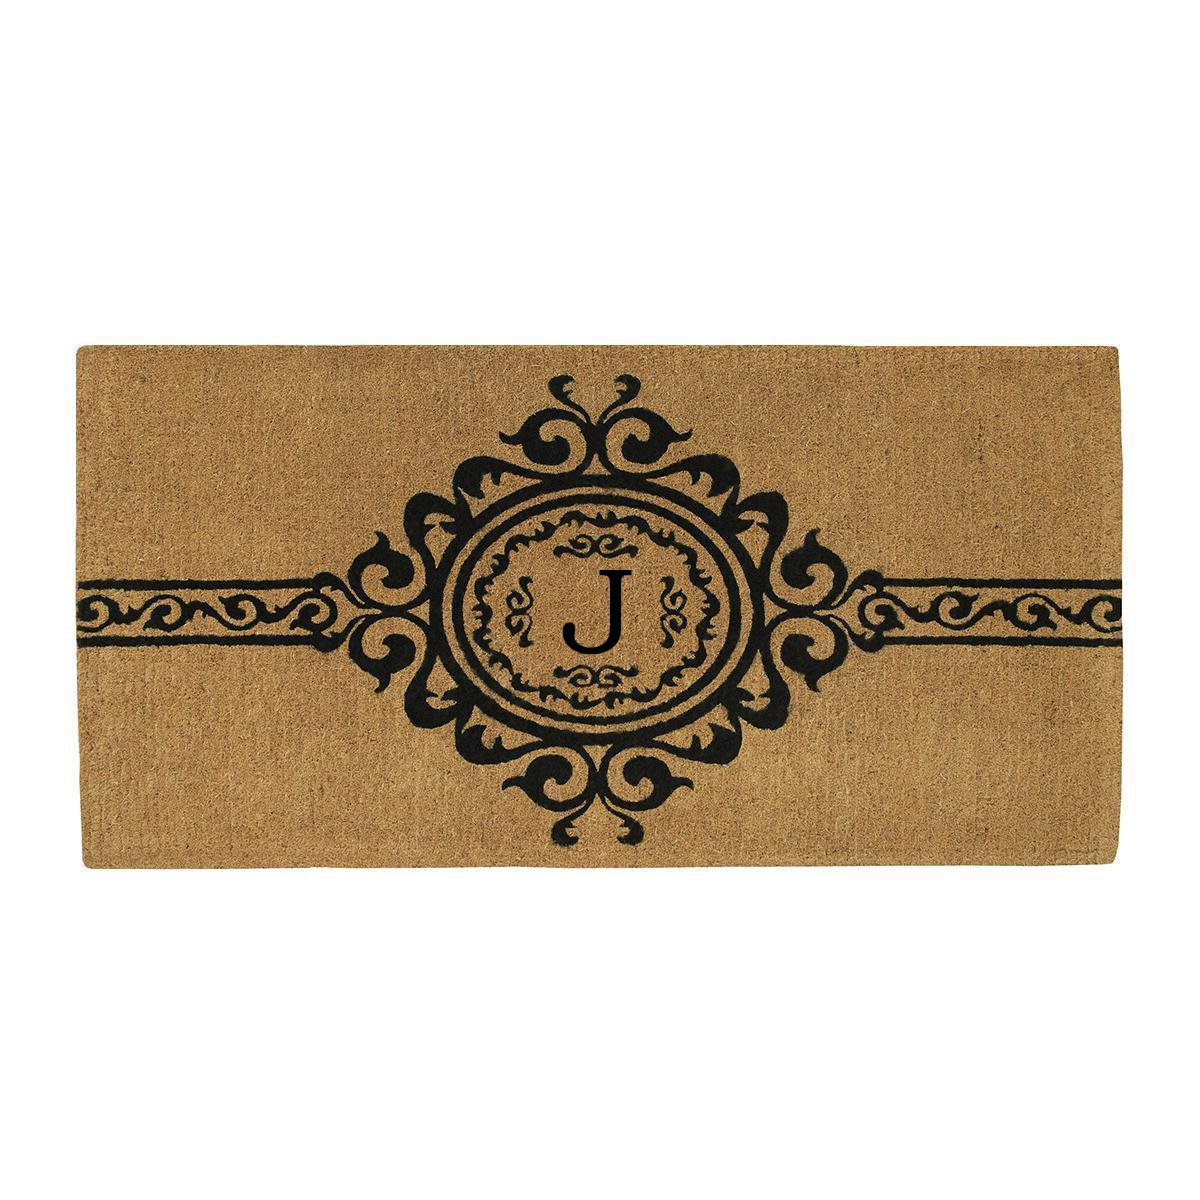 Home & More 180073672J Garbo Extra-thick Doormat, 36'' x 72'' x 1.50'', Monogrammed Letter J, Natural/Black